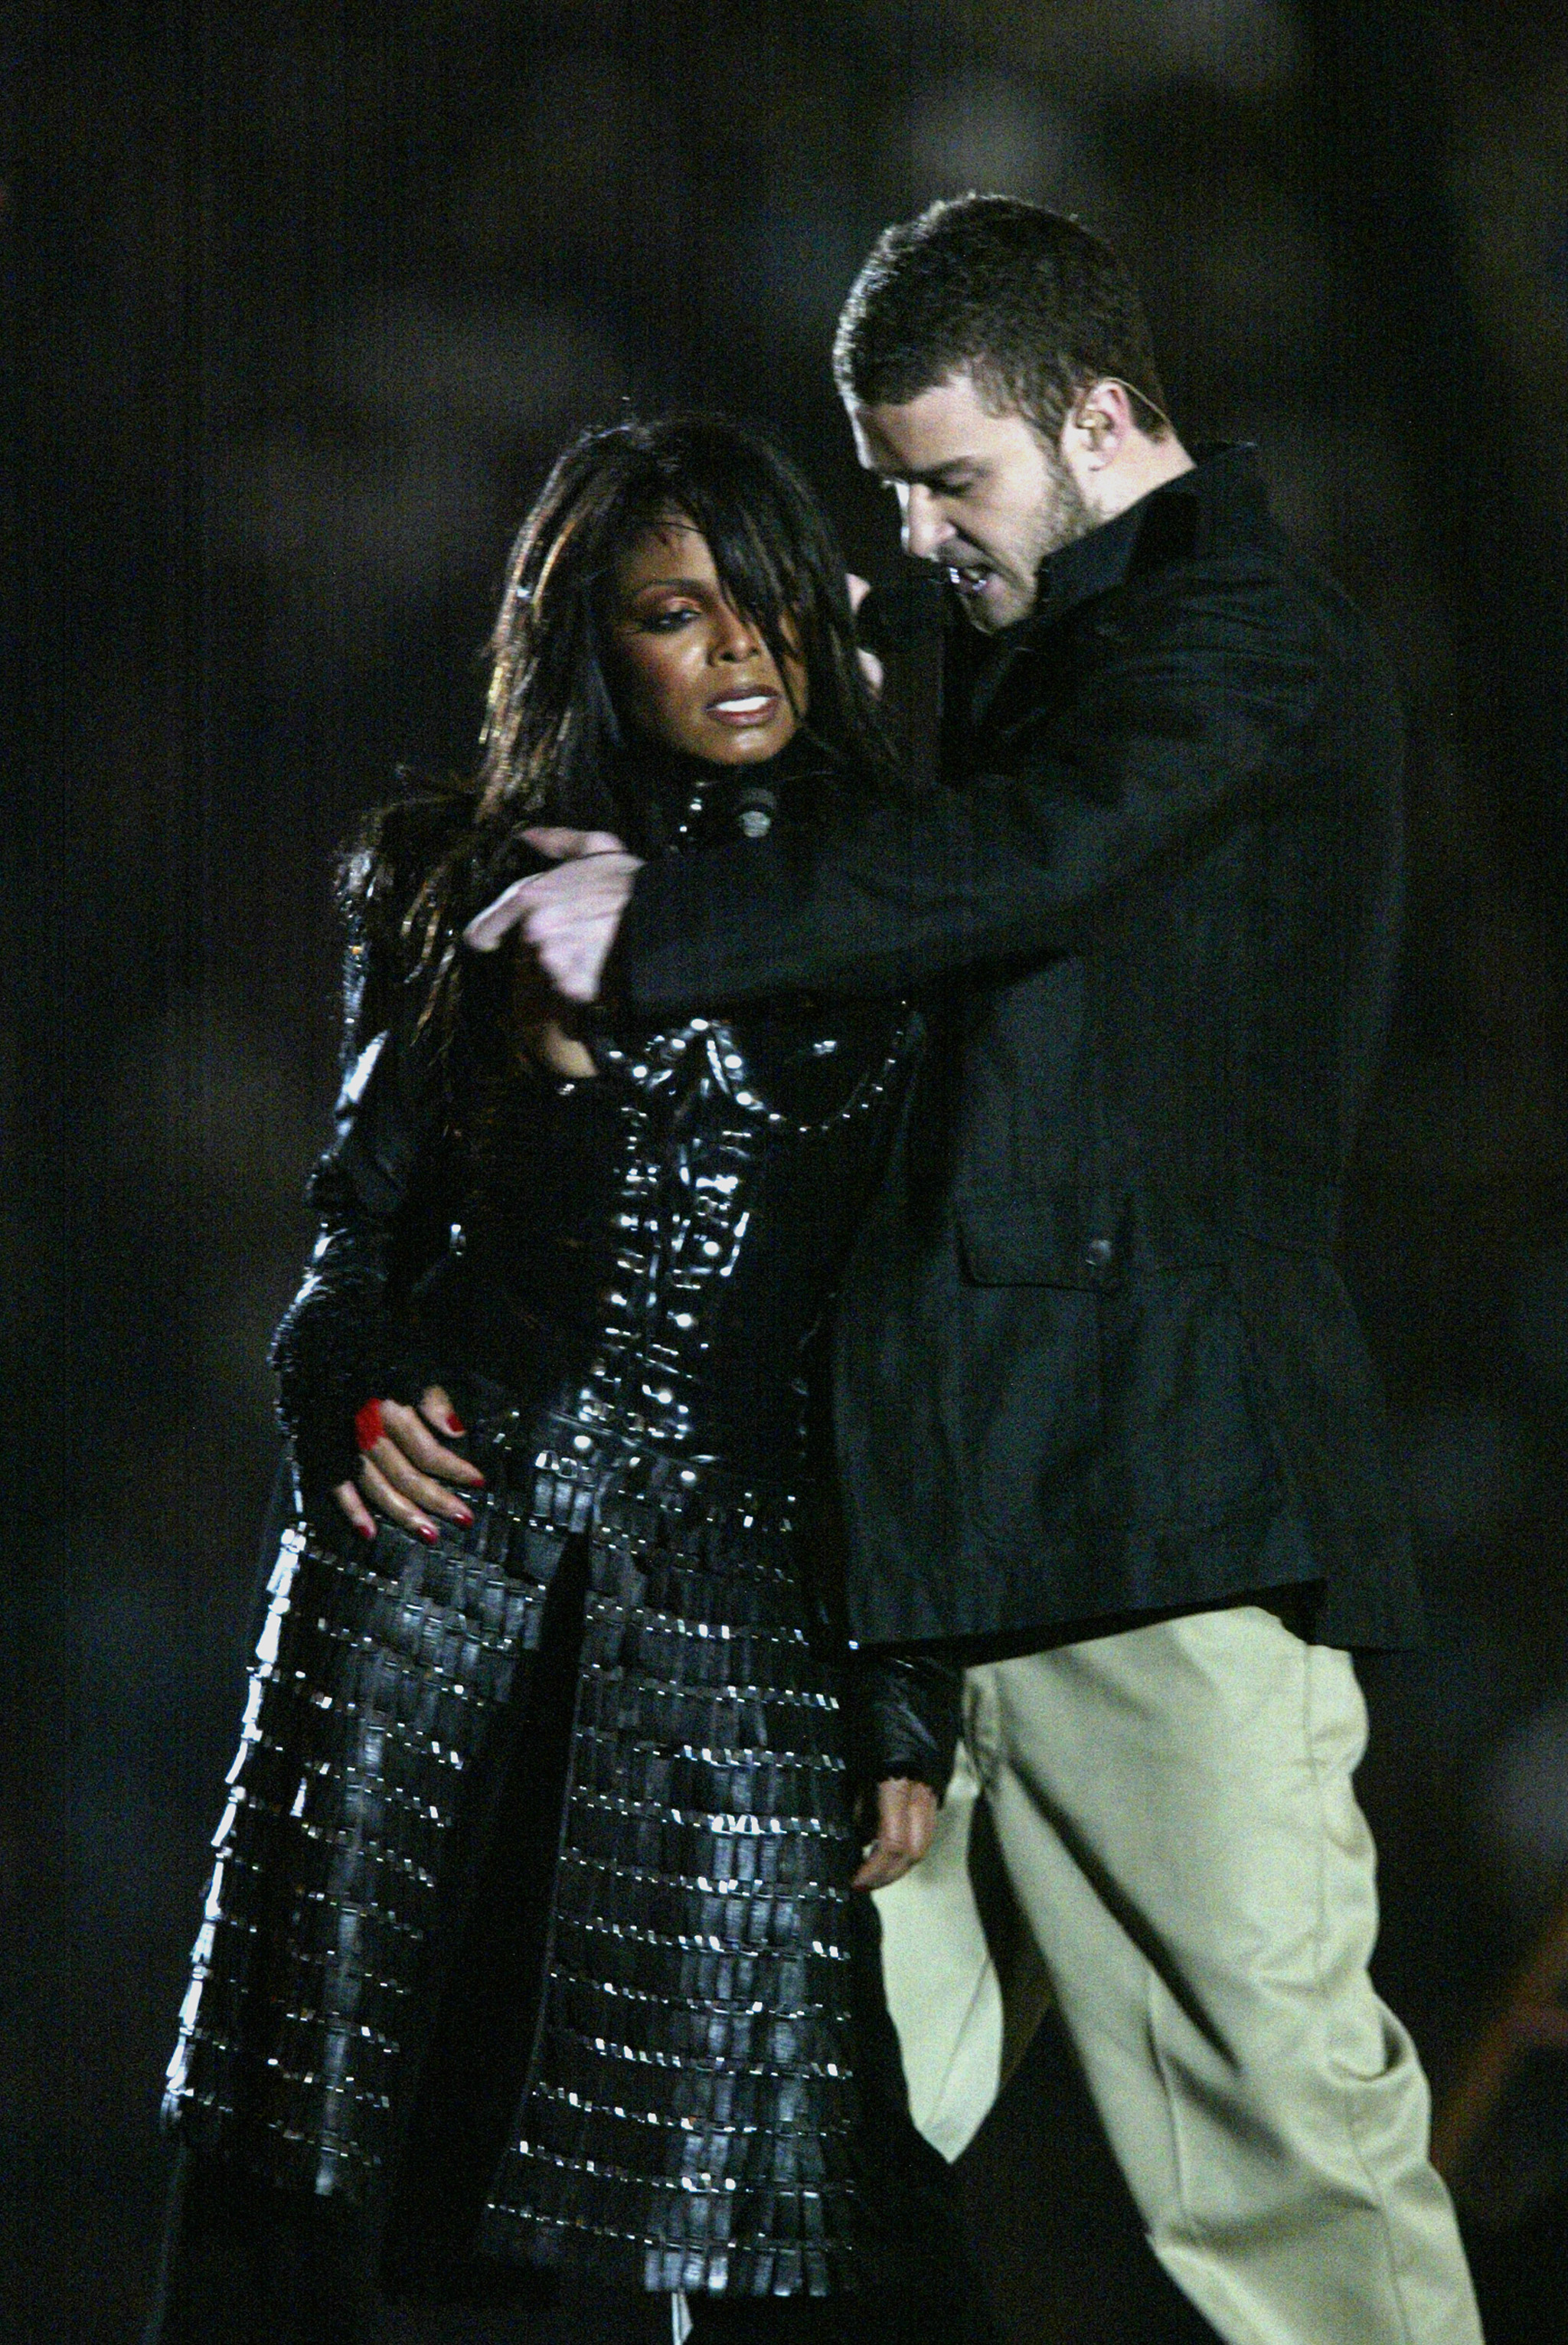 HOUSTON, TX - FEBRUARY 1:  Singers Janet Jackson and Justin Timberlake perform during the halftime show at Super Bowl XXXVIII between the New England Patriots and the Carolina Panthers at Reliant Stadium on February 1, 2004 in Houston, Texas. (Photo by Do